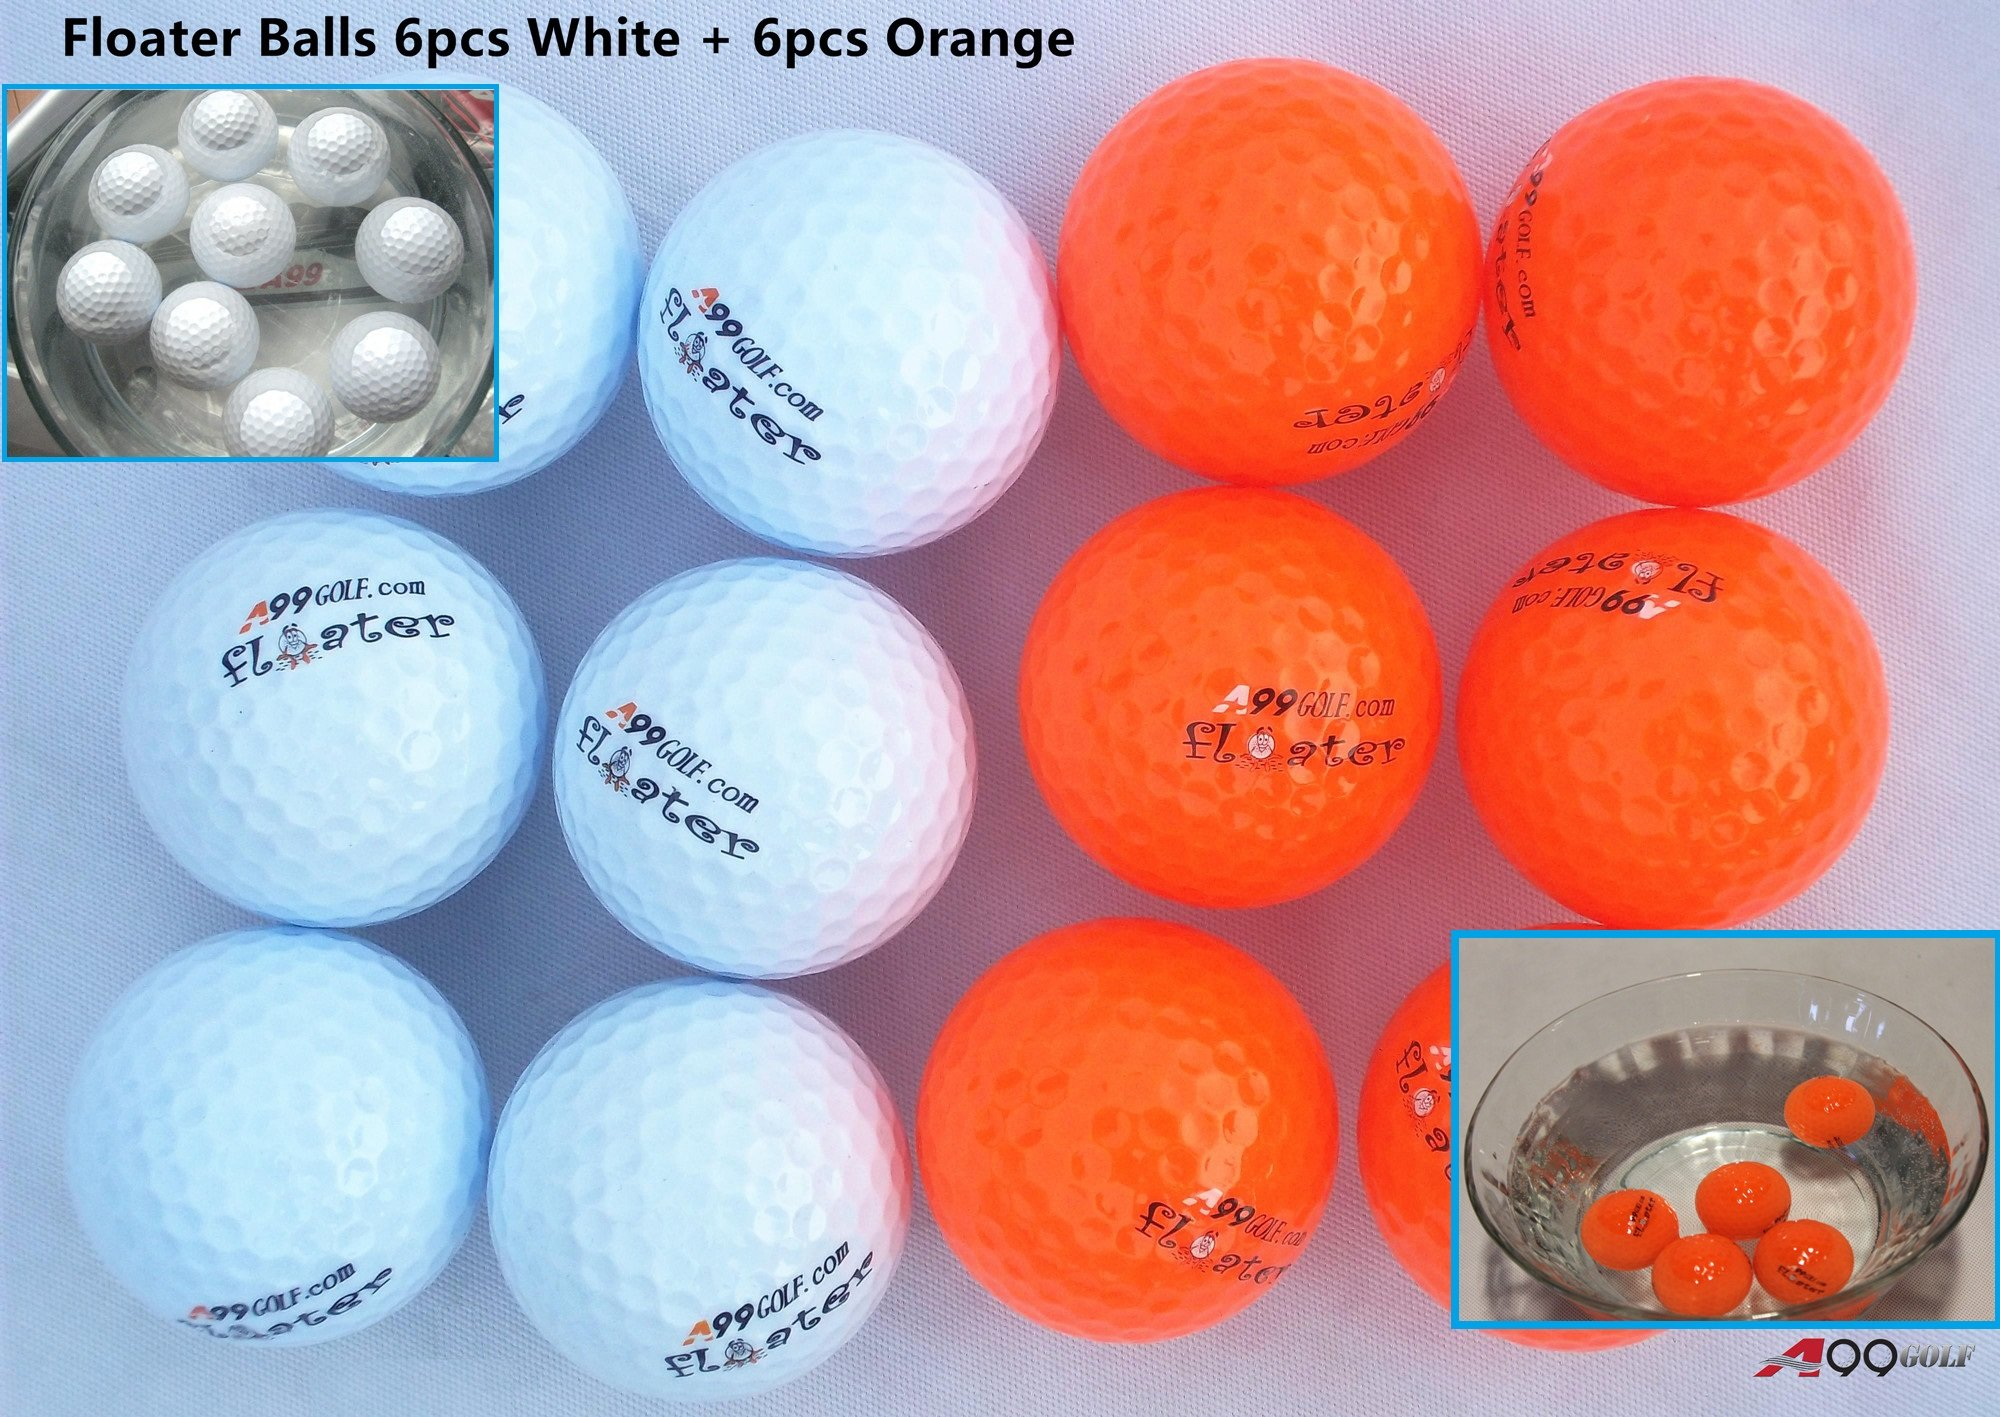 A99 Golf 6pcs Floater Balls White + 6pcs Orange Floater Balls by A99 Golf